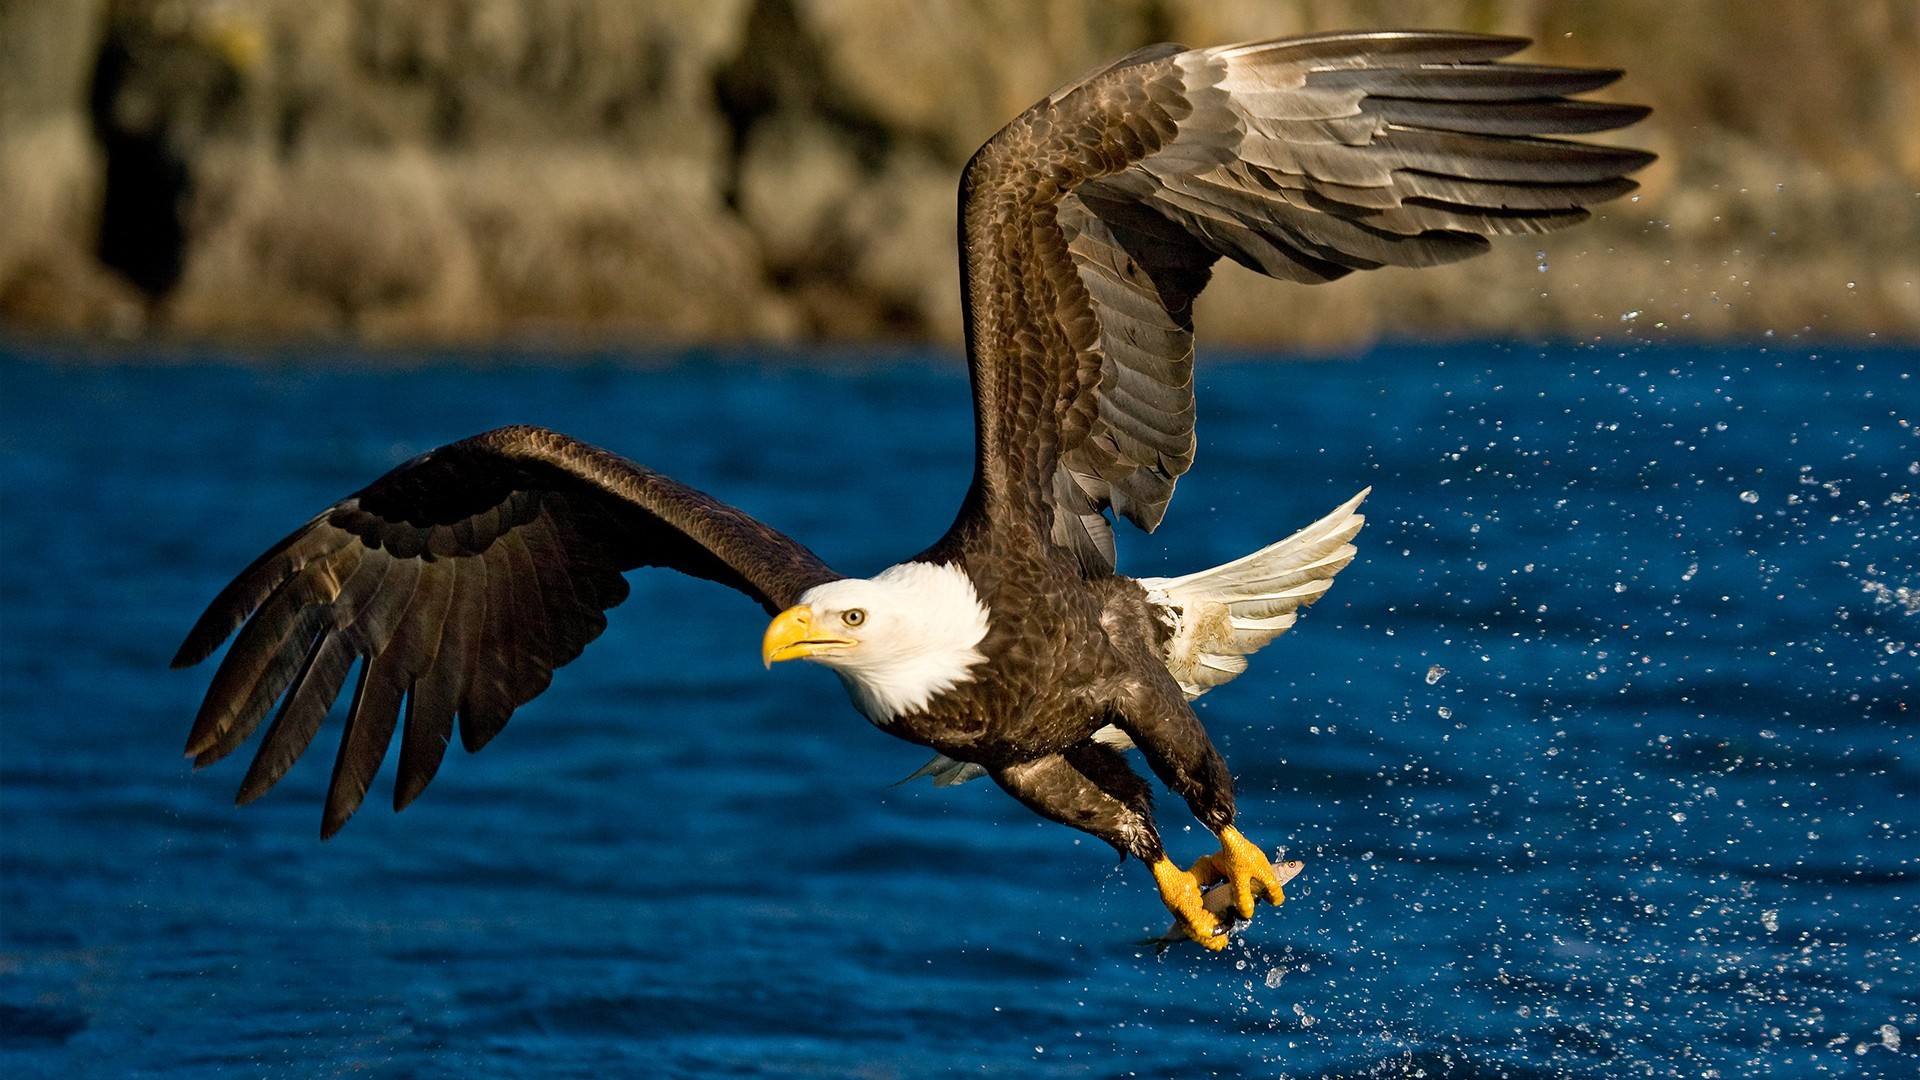 water Birds Eagles bald eagles HD Wallpaper